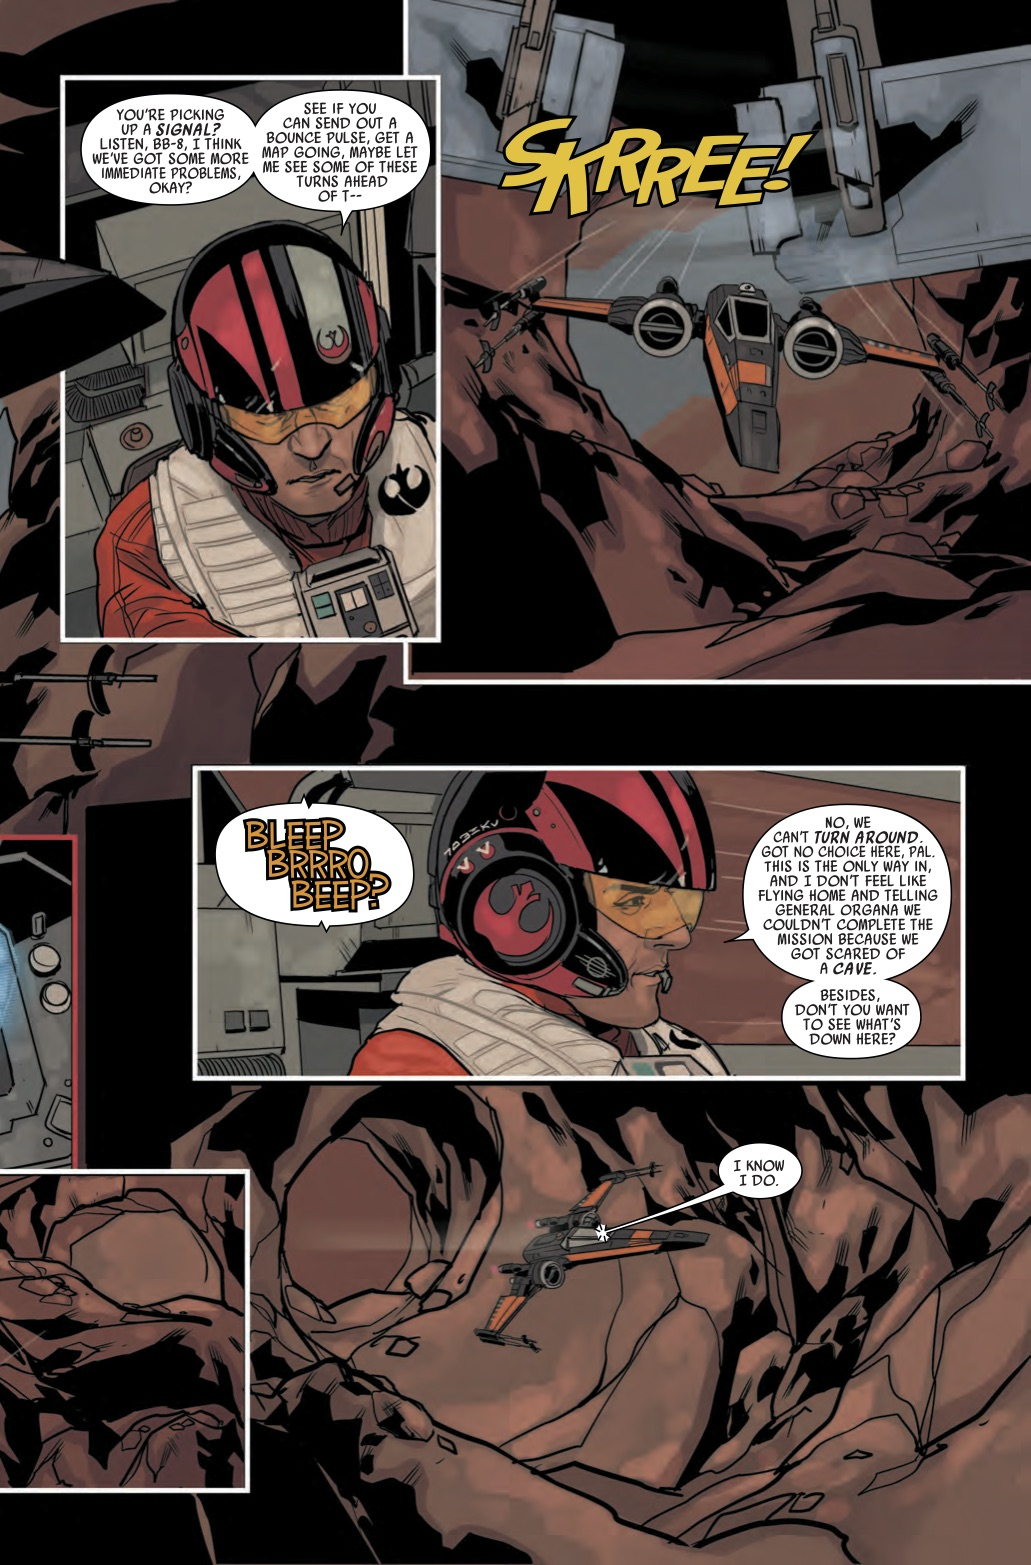 From POE DAMERON #1